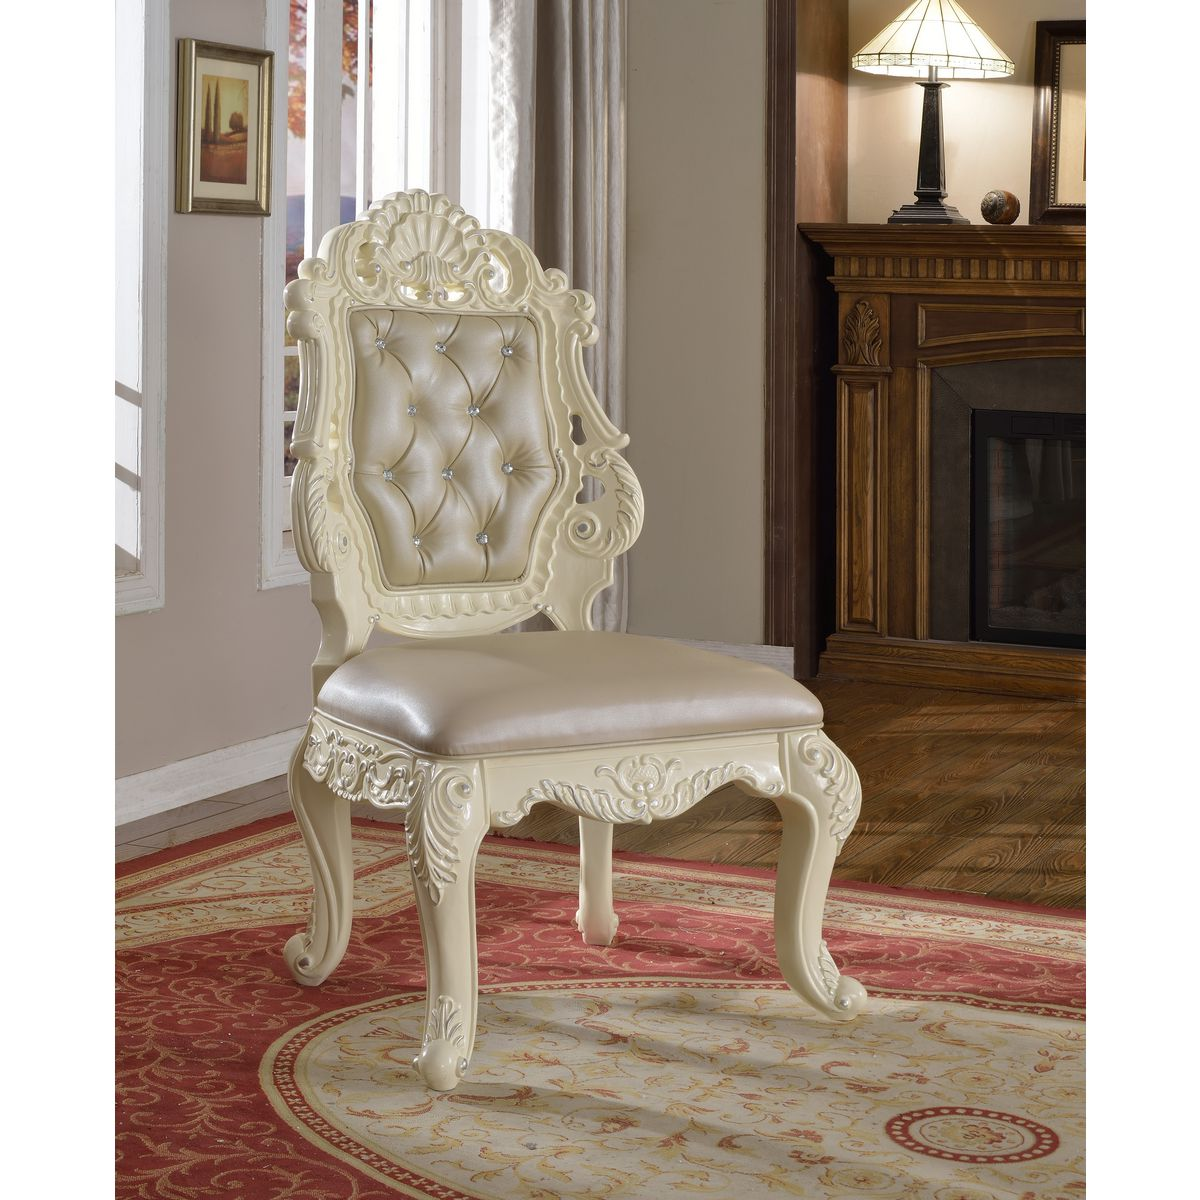 Tufted leather dining chairs - Madrid Side Dining Chair In Crystal Tufted Leather On Ornate Pearl White Frame Set Of 2